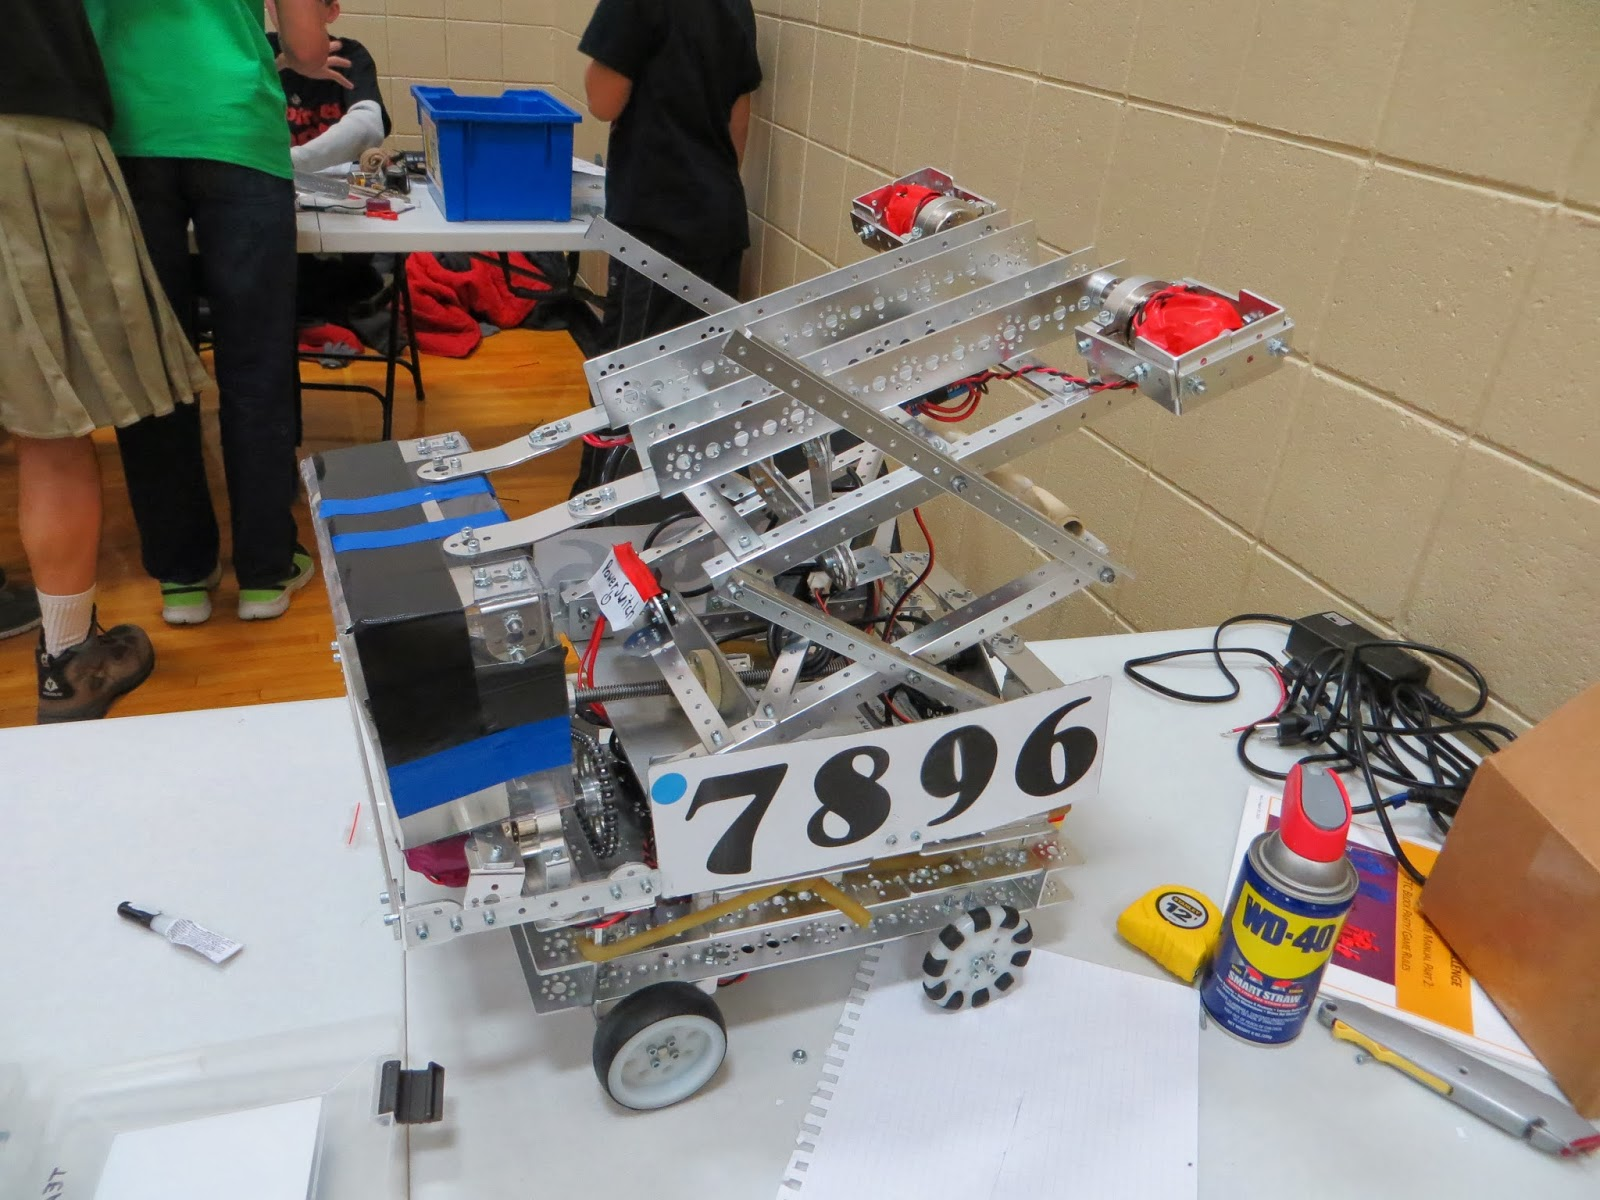 Todd Swank: FTC Robotics Tournament at Lakeville Middle School